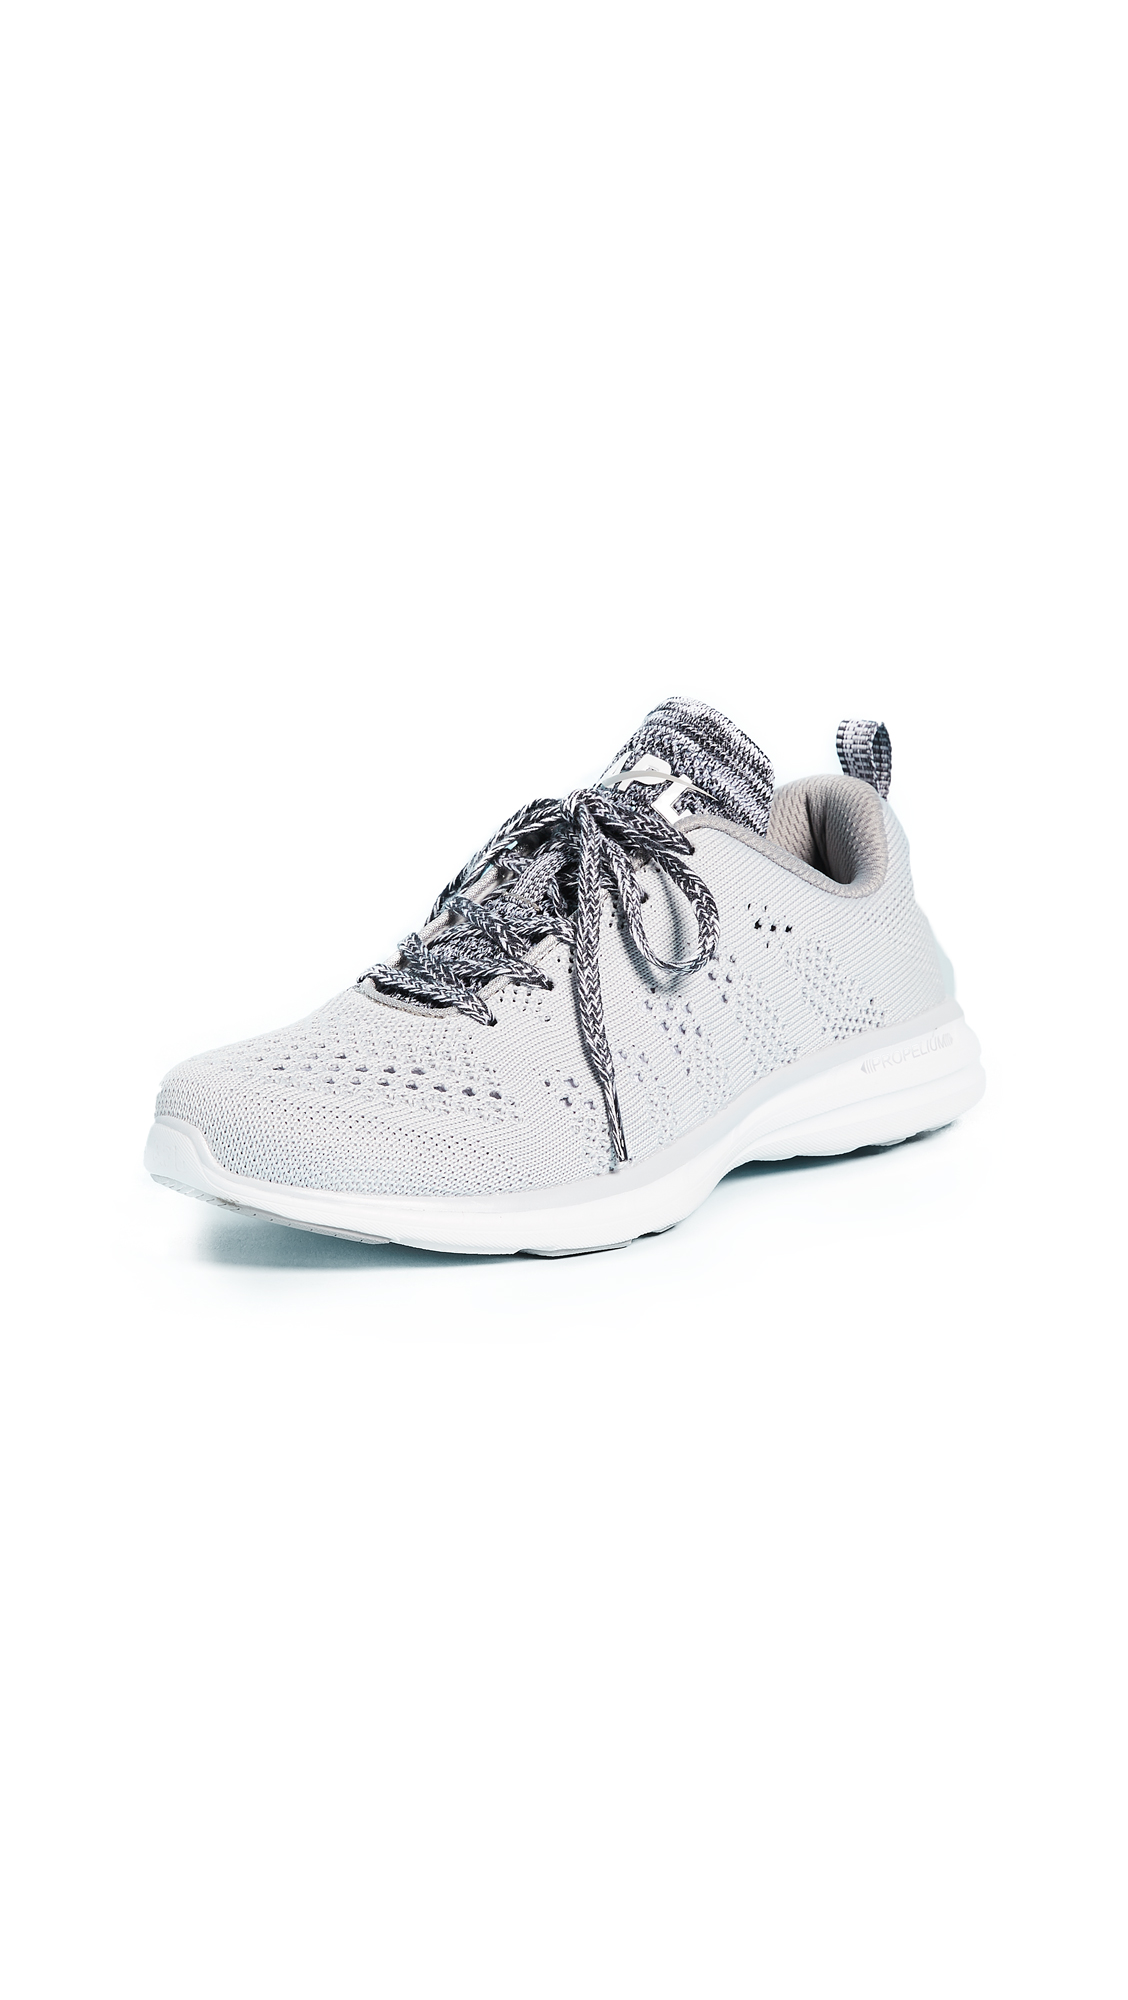 APL: Athletic Propulsion Labs TechLoom Pro Sneakers - Steel Grey/Heather Grey